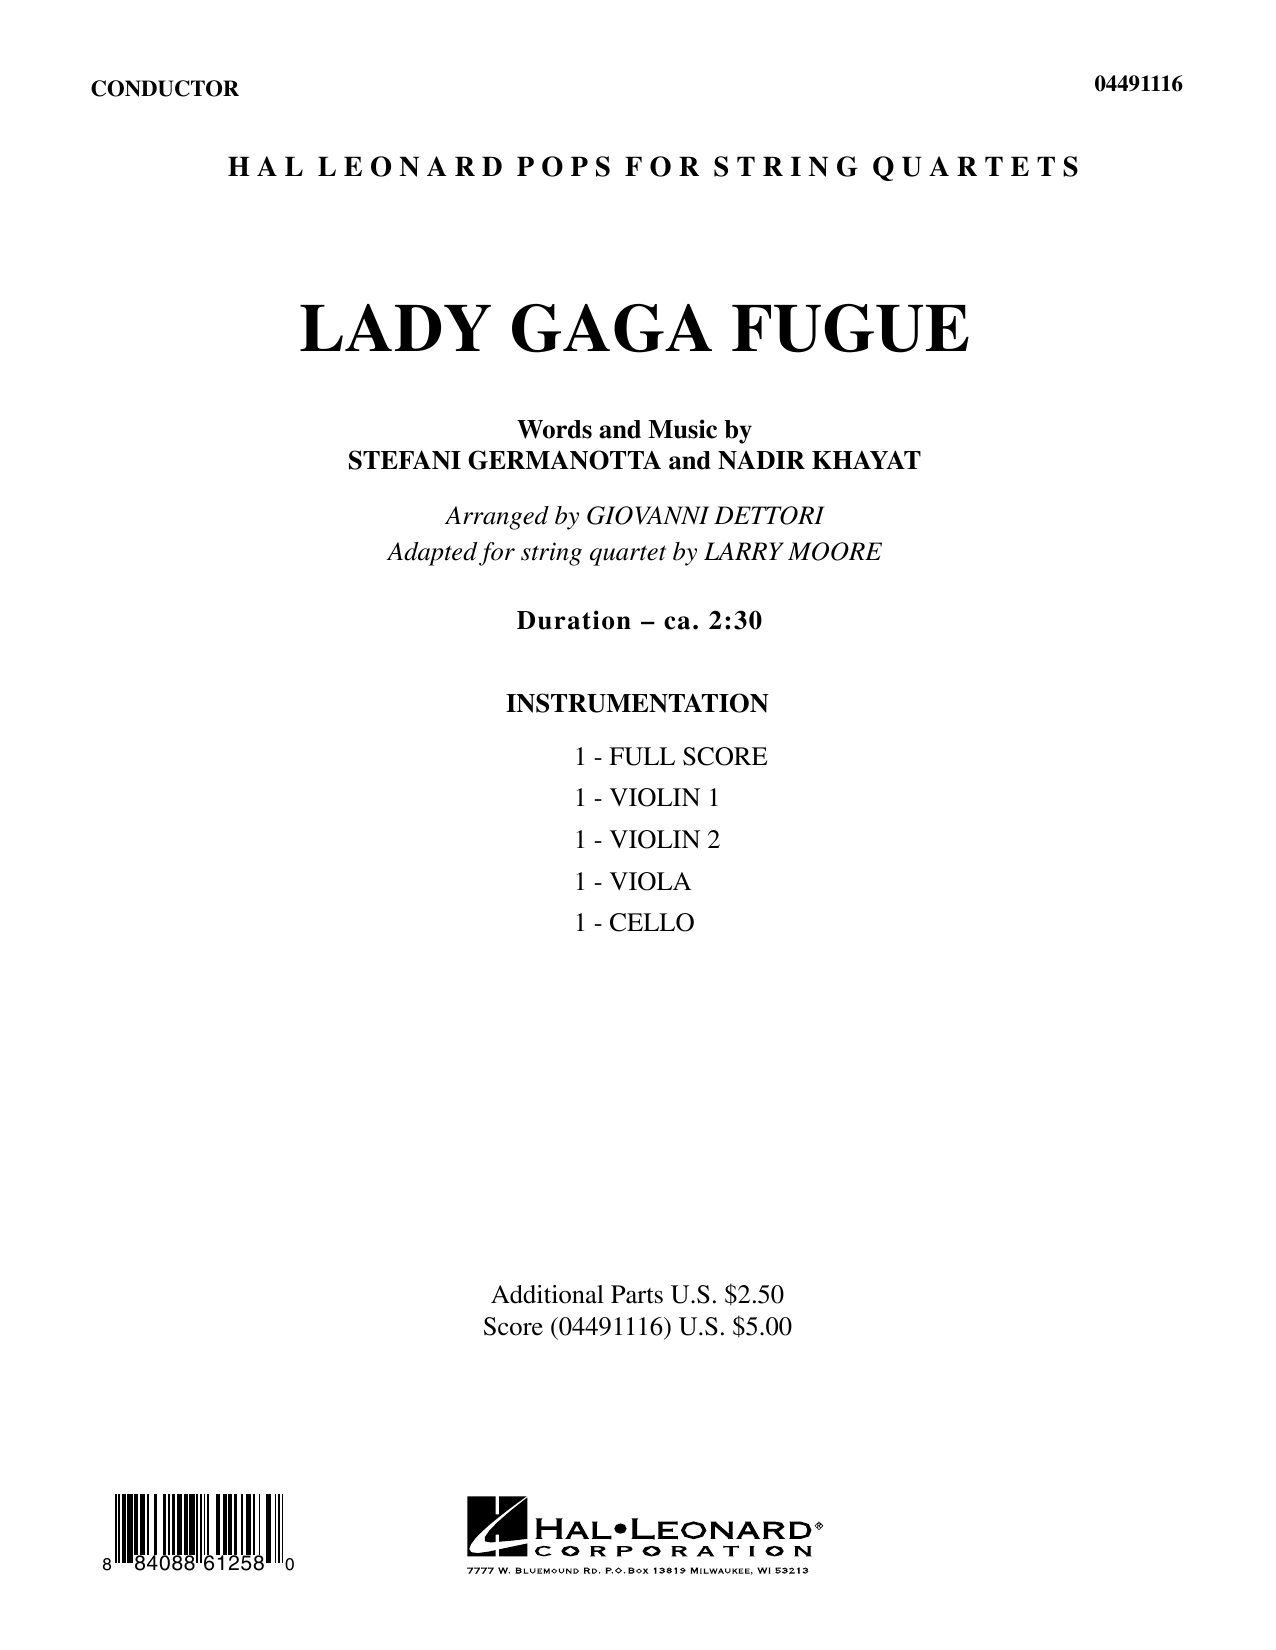 Lady Gaga Fugue - Full Score (String Quartet)